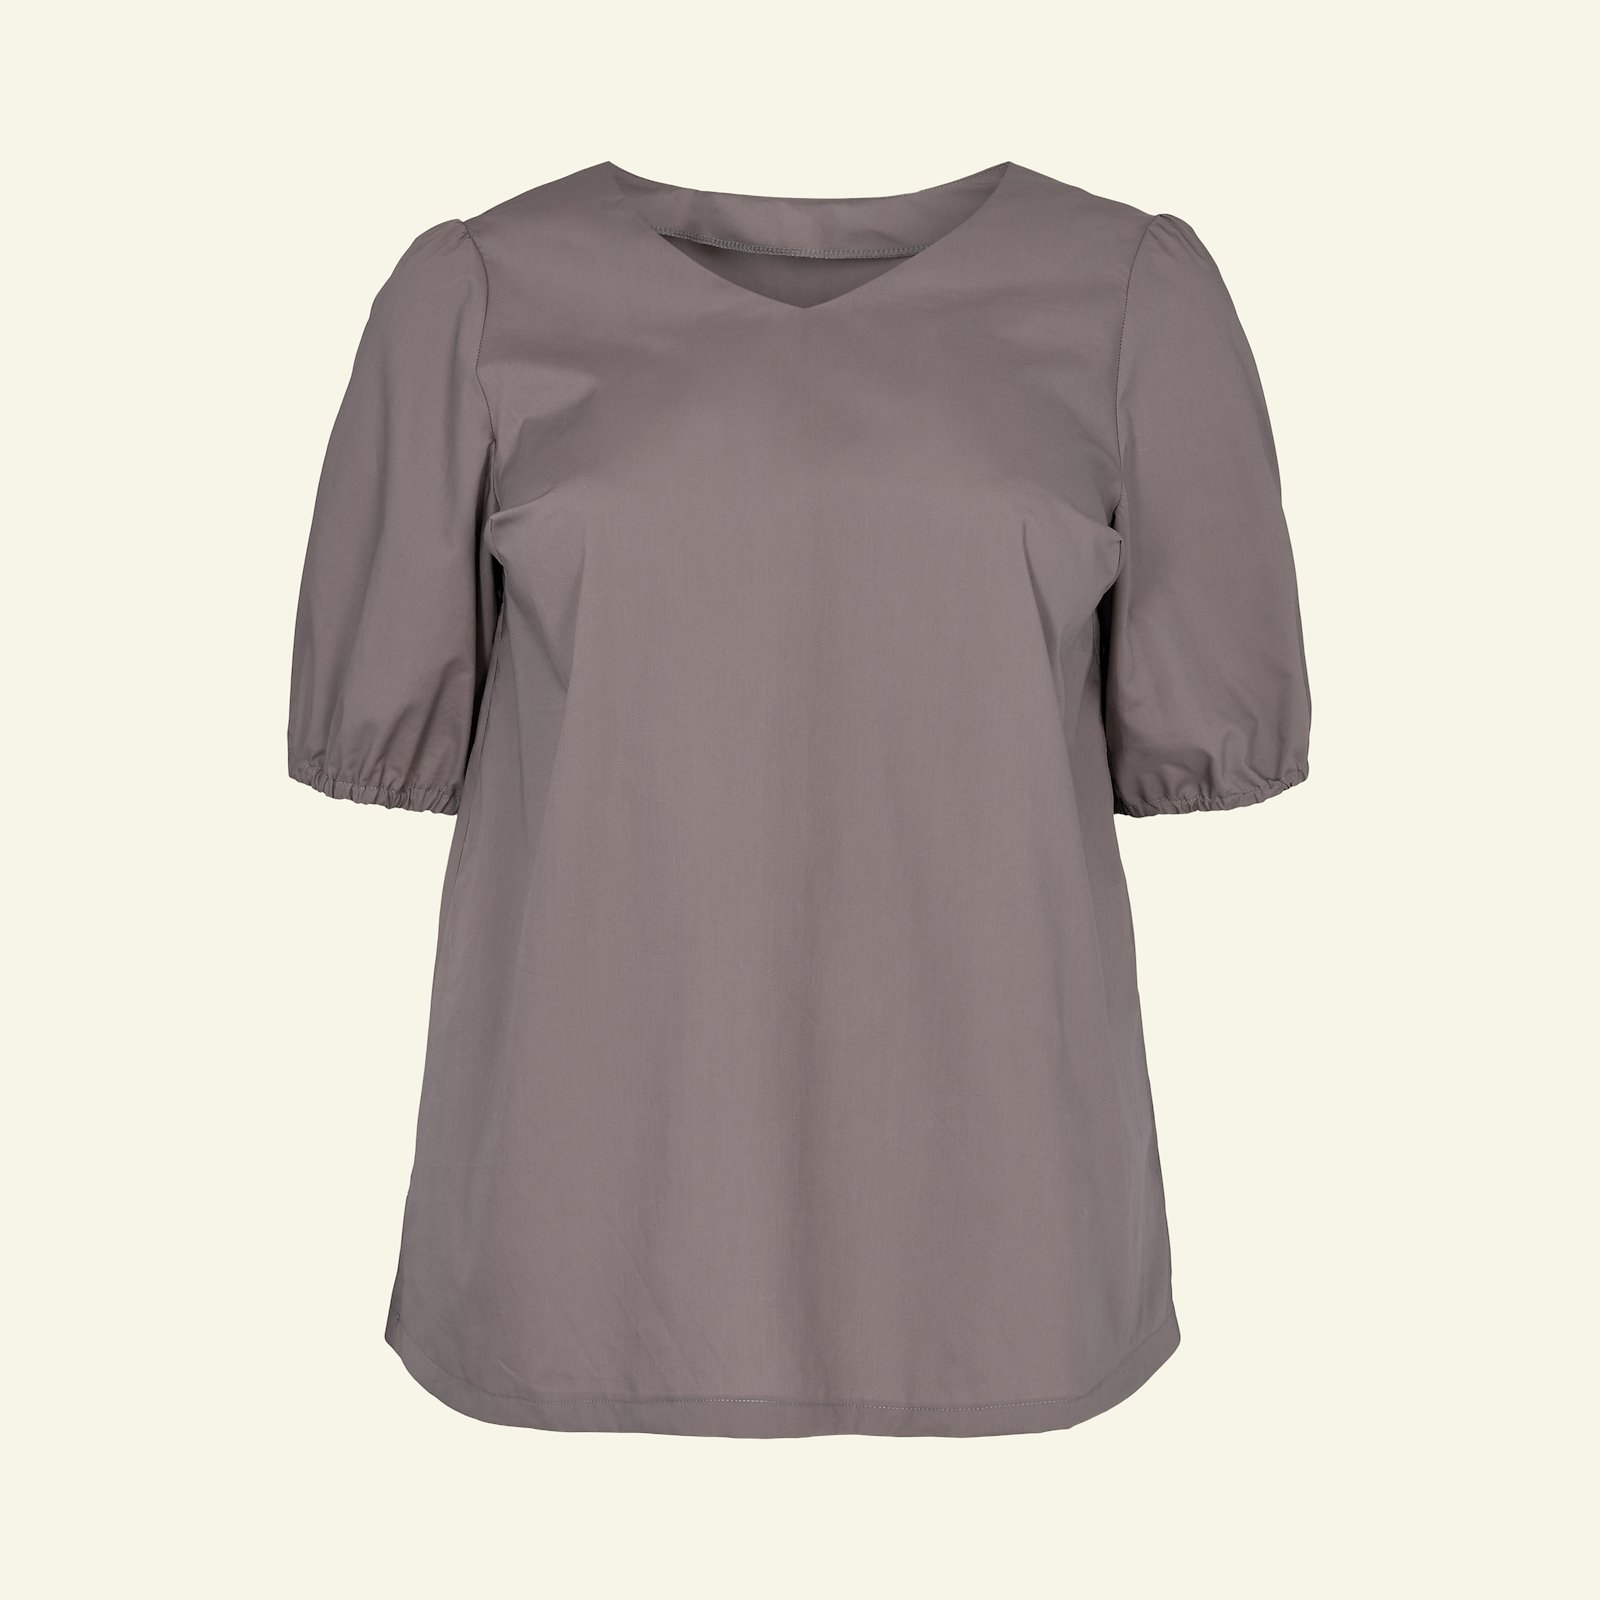 Blouse with long and short sleeve, 50/22 p72006_540121_sskit